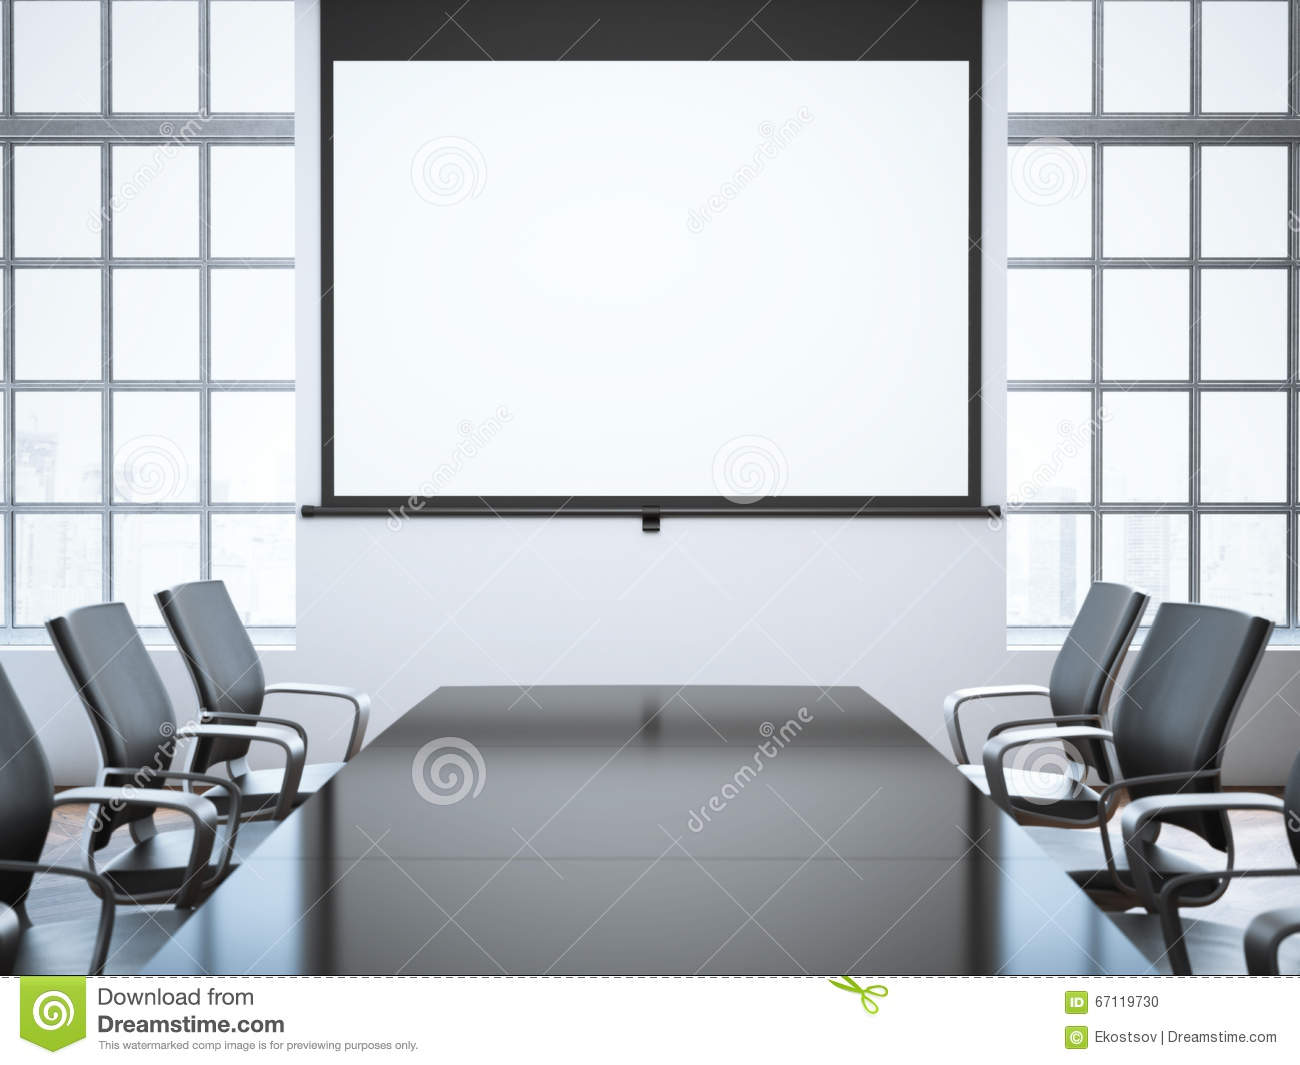 Modern Office Room With Projector Screen. 3d Rendering Stock Photo ...